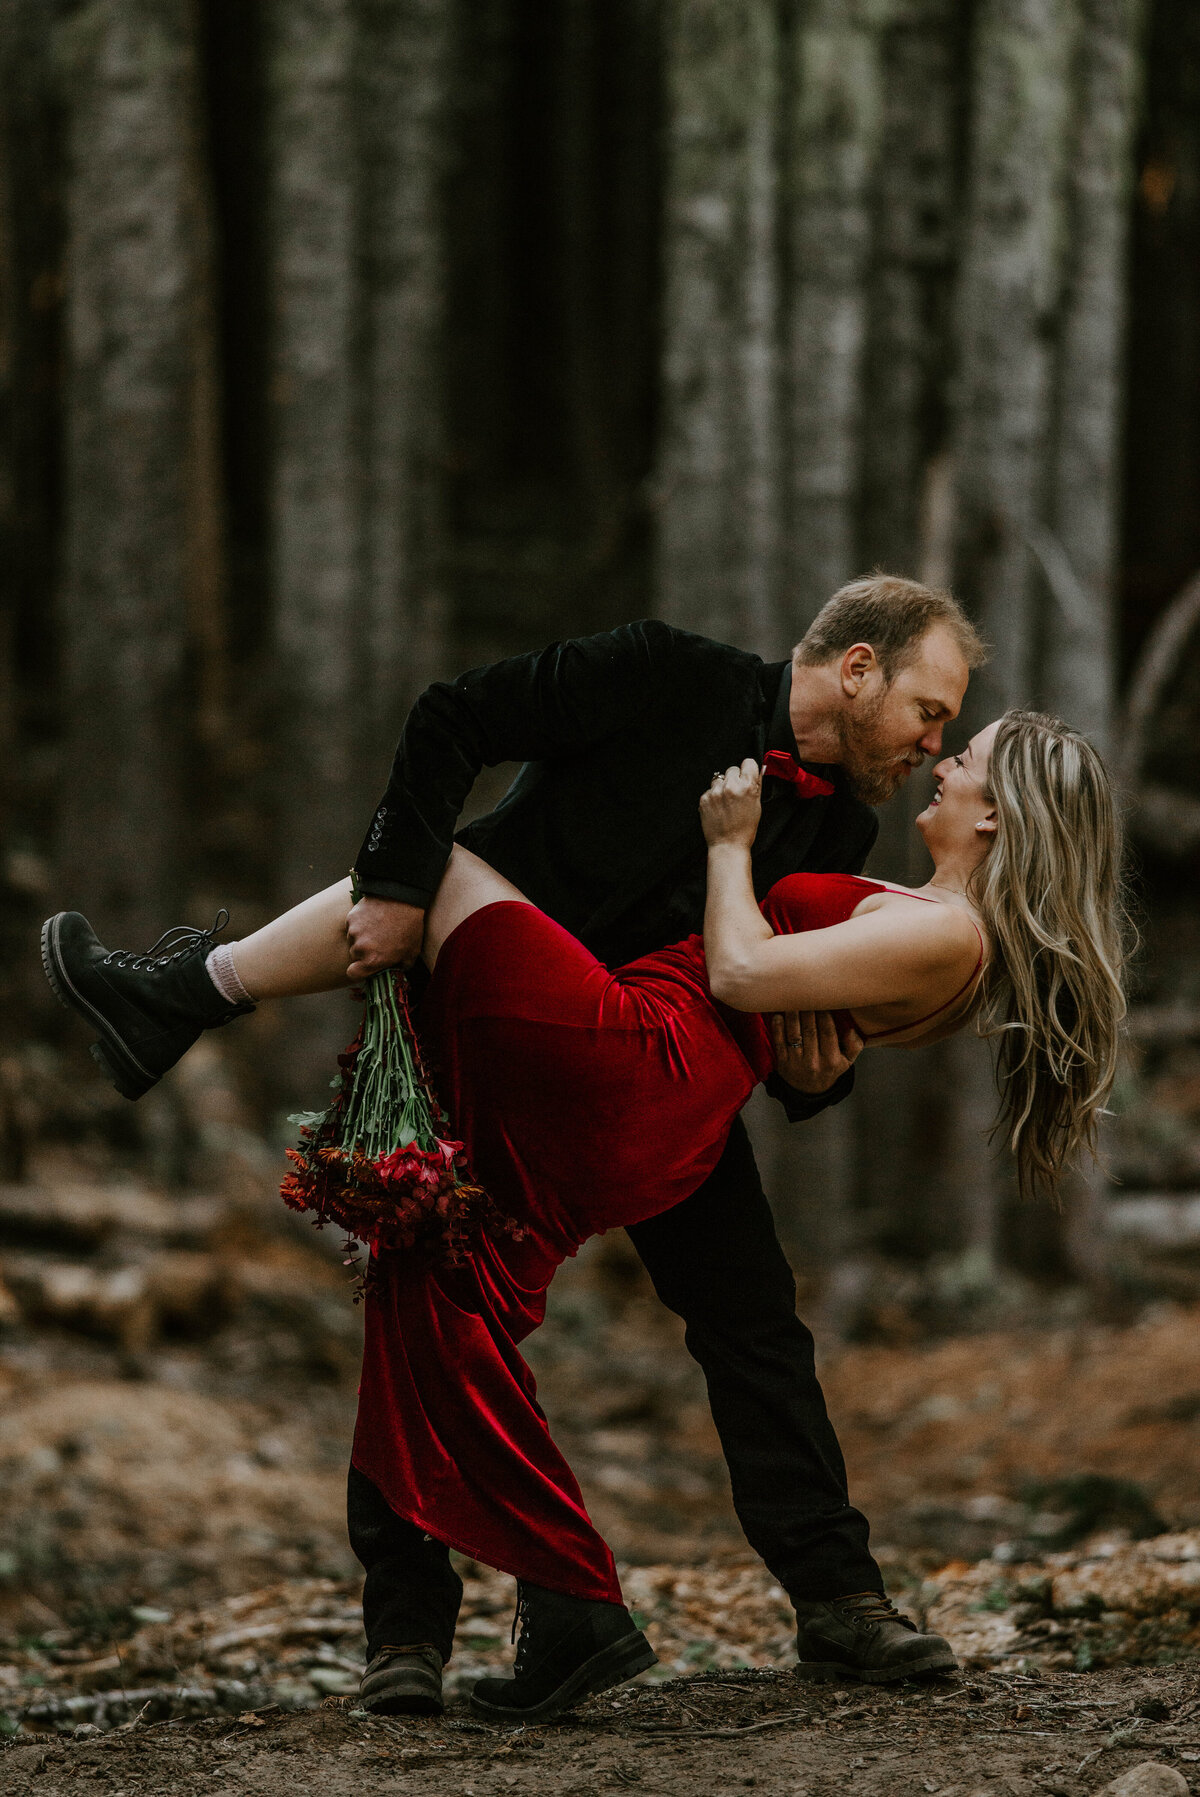 mount-hood-mountain-cabin-woods-elopement-forest-oregon-pnw-wedding-photographer0478